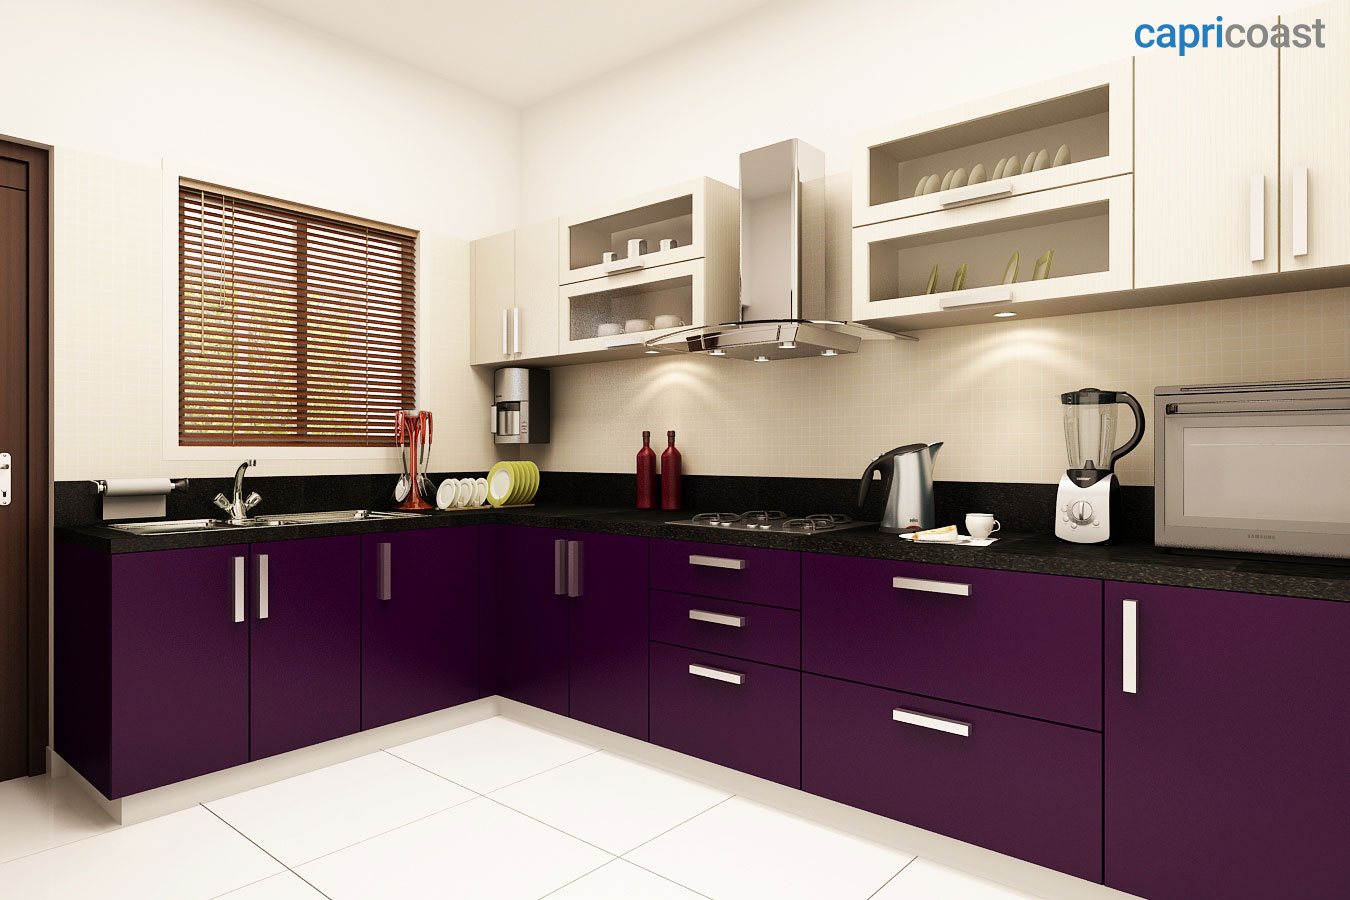 Design decor disha an indian design decor blog capricoast the smart way to do your Kitchen platform granite design